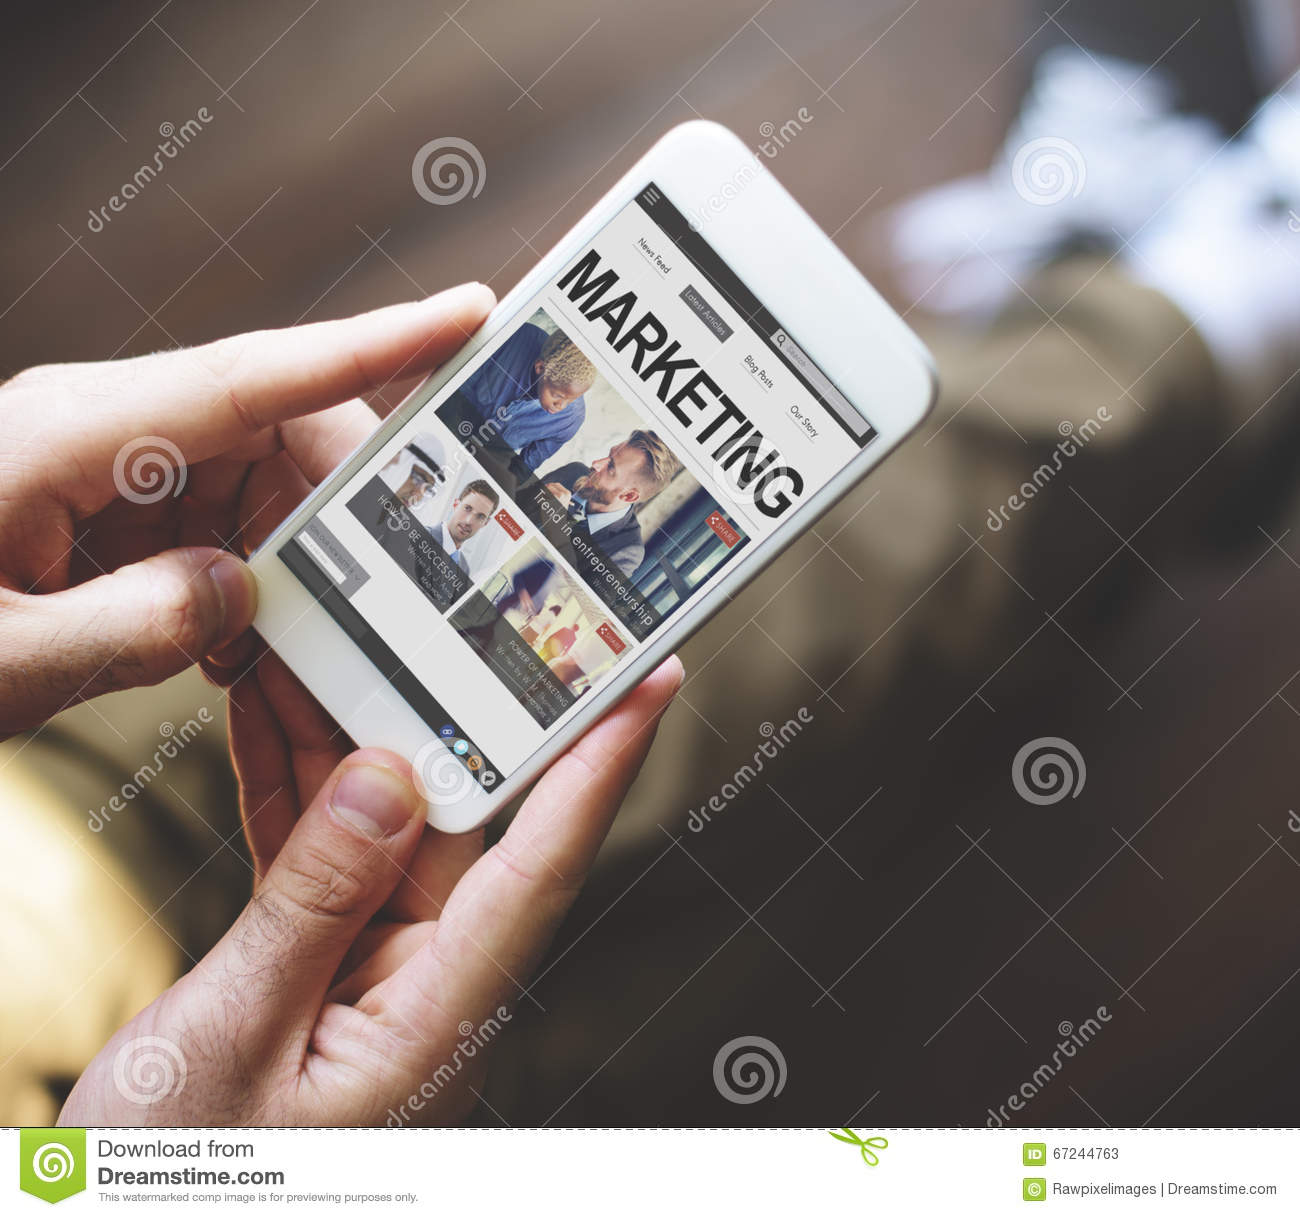 the use of smartphone applications Specific to physiotherapy home exercise programs, smartphone applications provide a new and emerging way to deliver physiotherapy that promotes active participation.